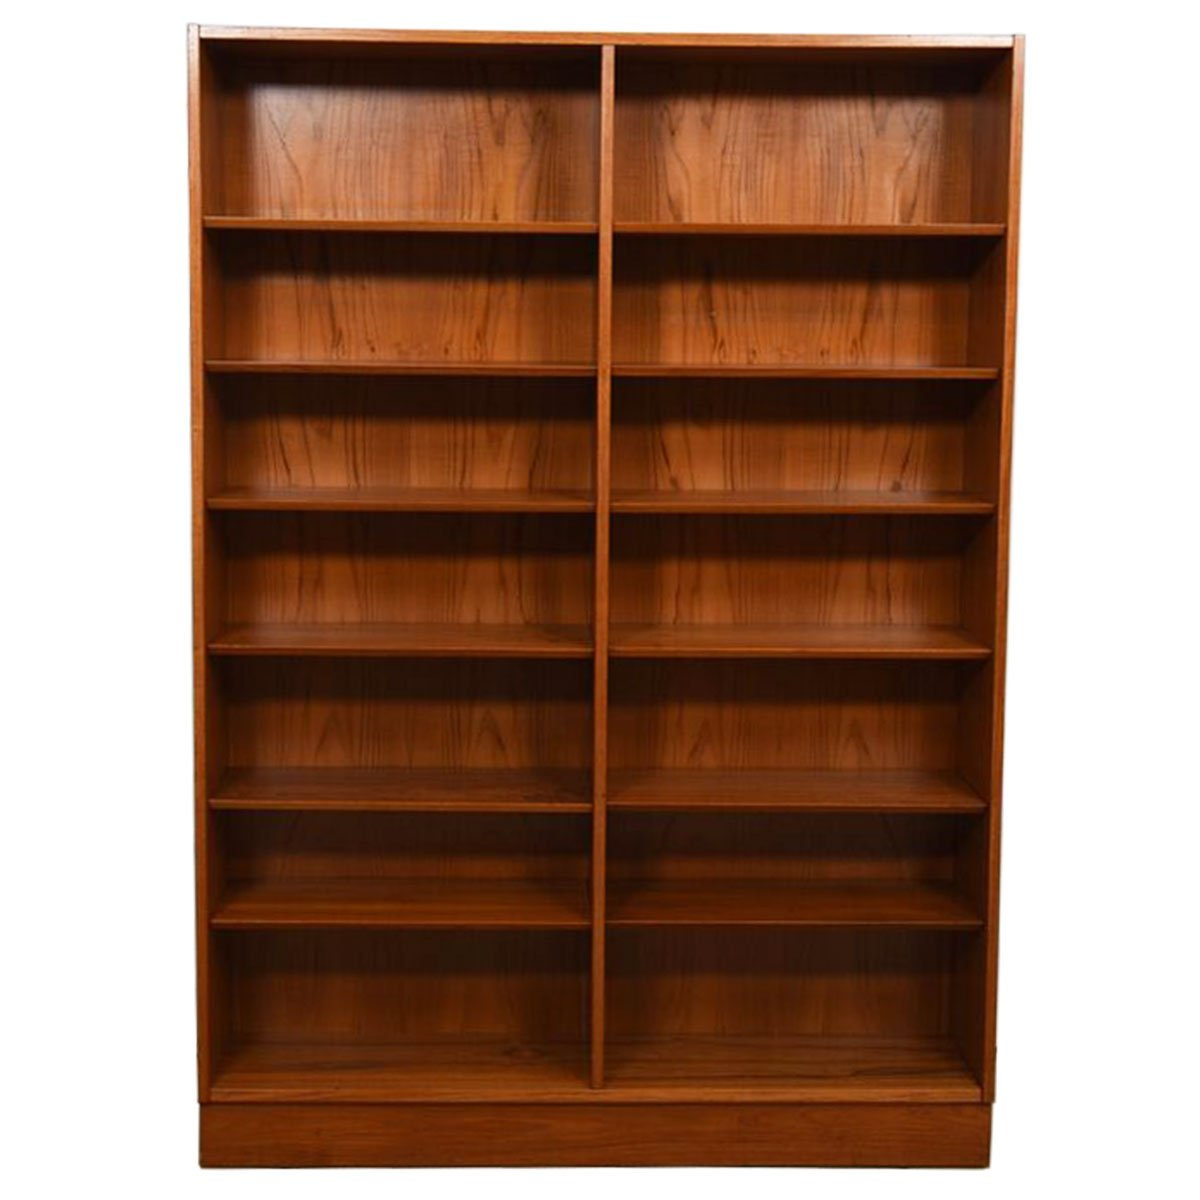 Danish Modern Teak Adjustable Shelf Bookcase